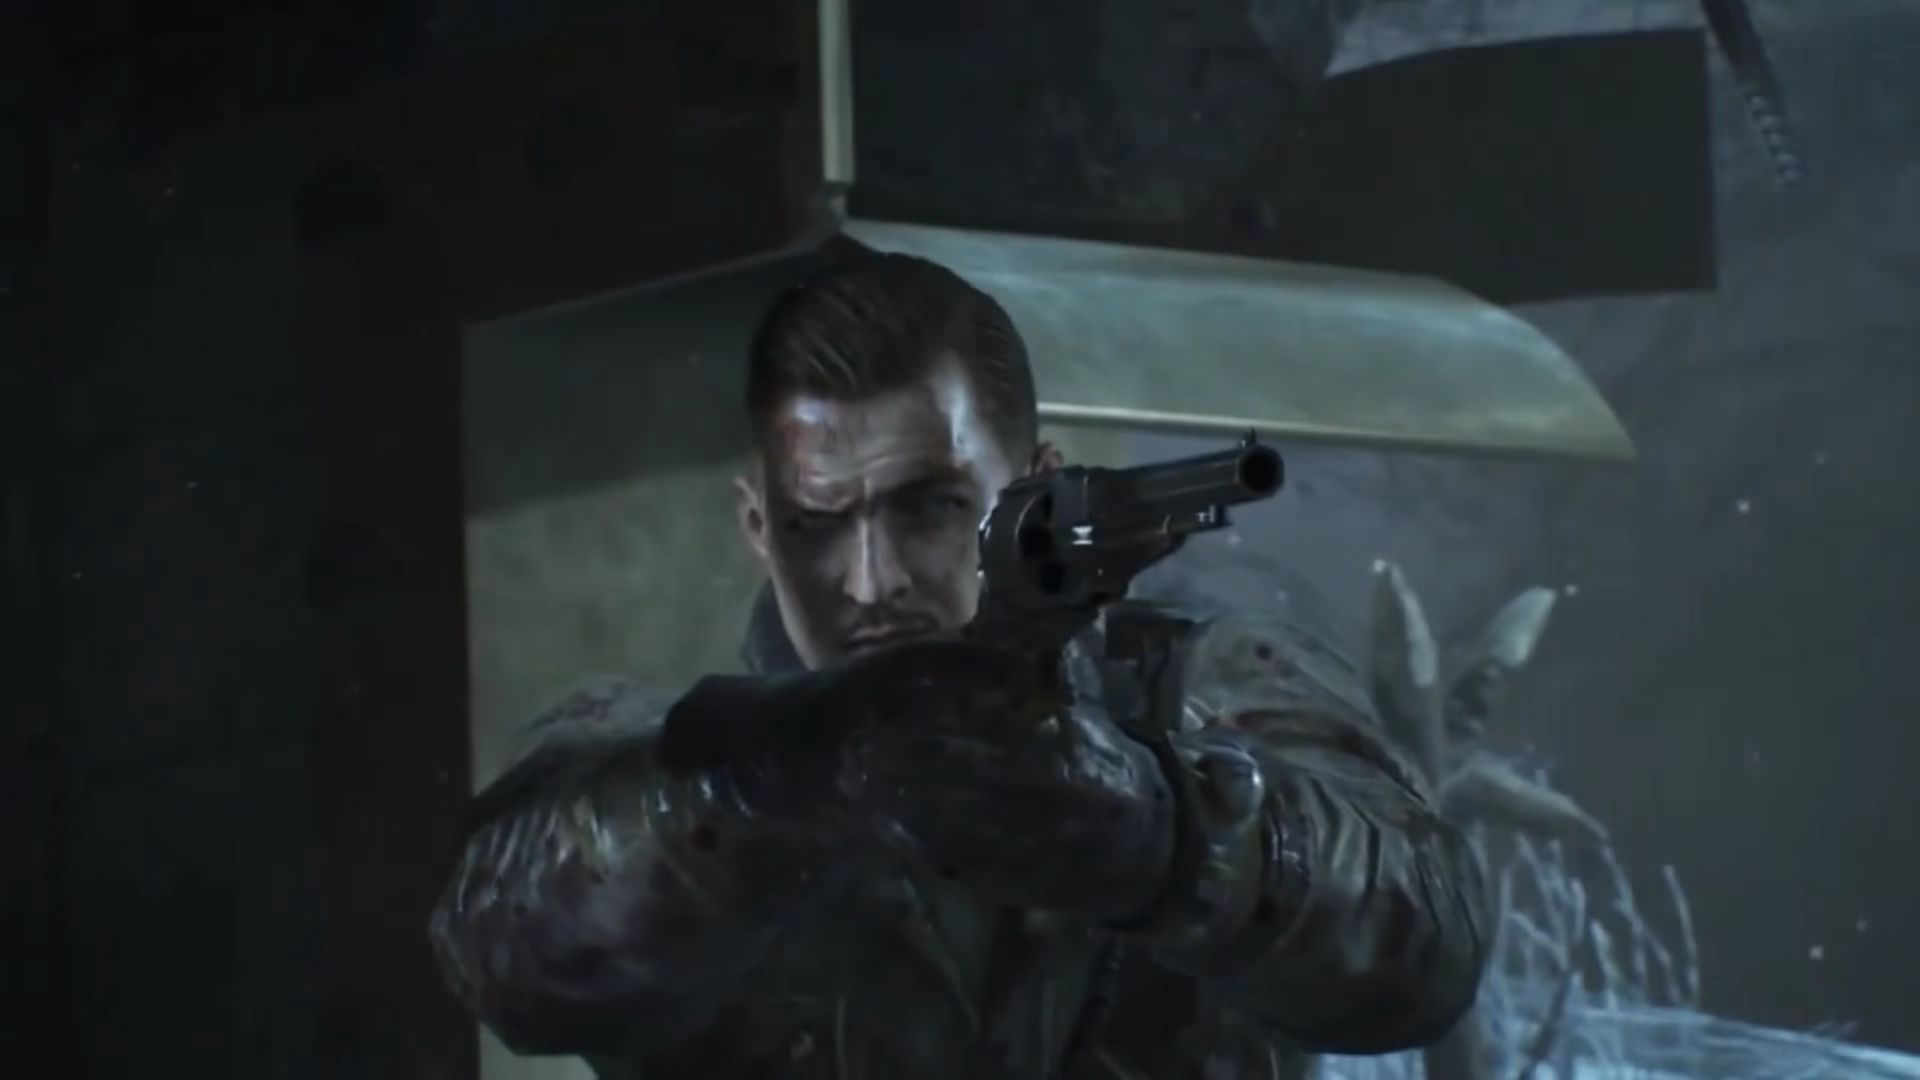 Call of Duty Zombies oneshots - Primis Dempsey X Reader